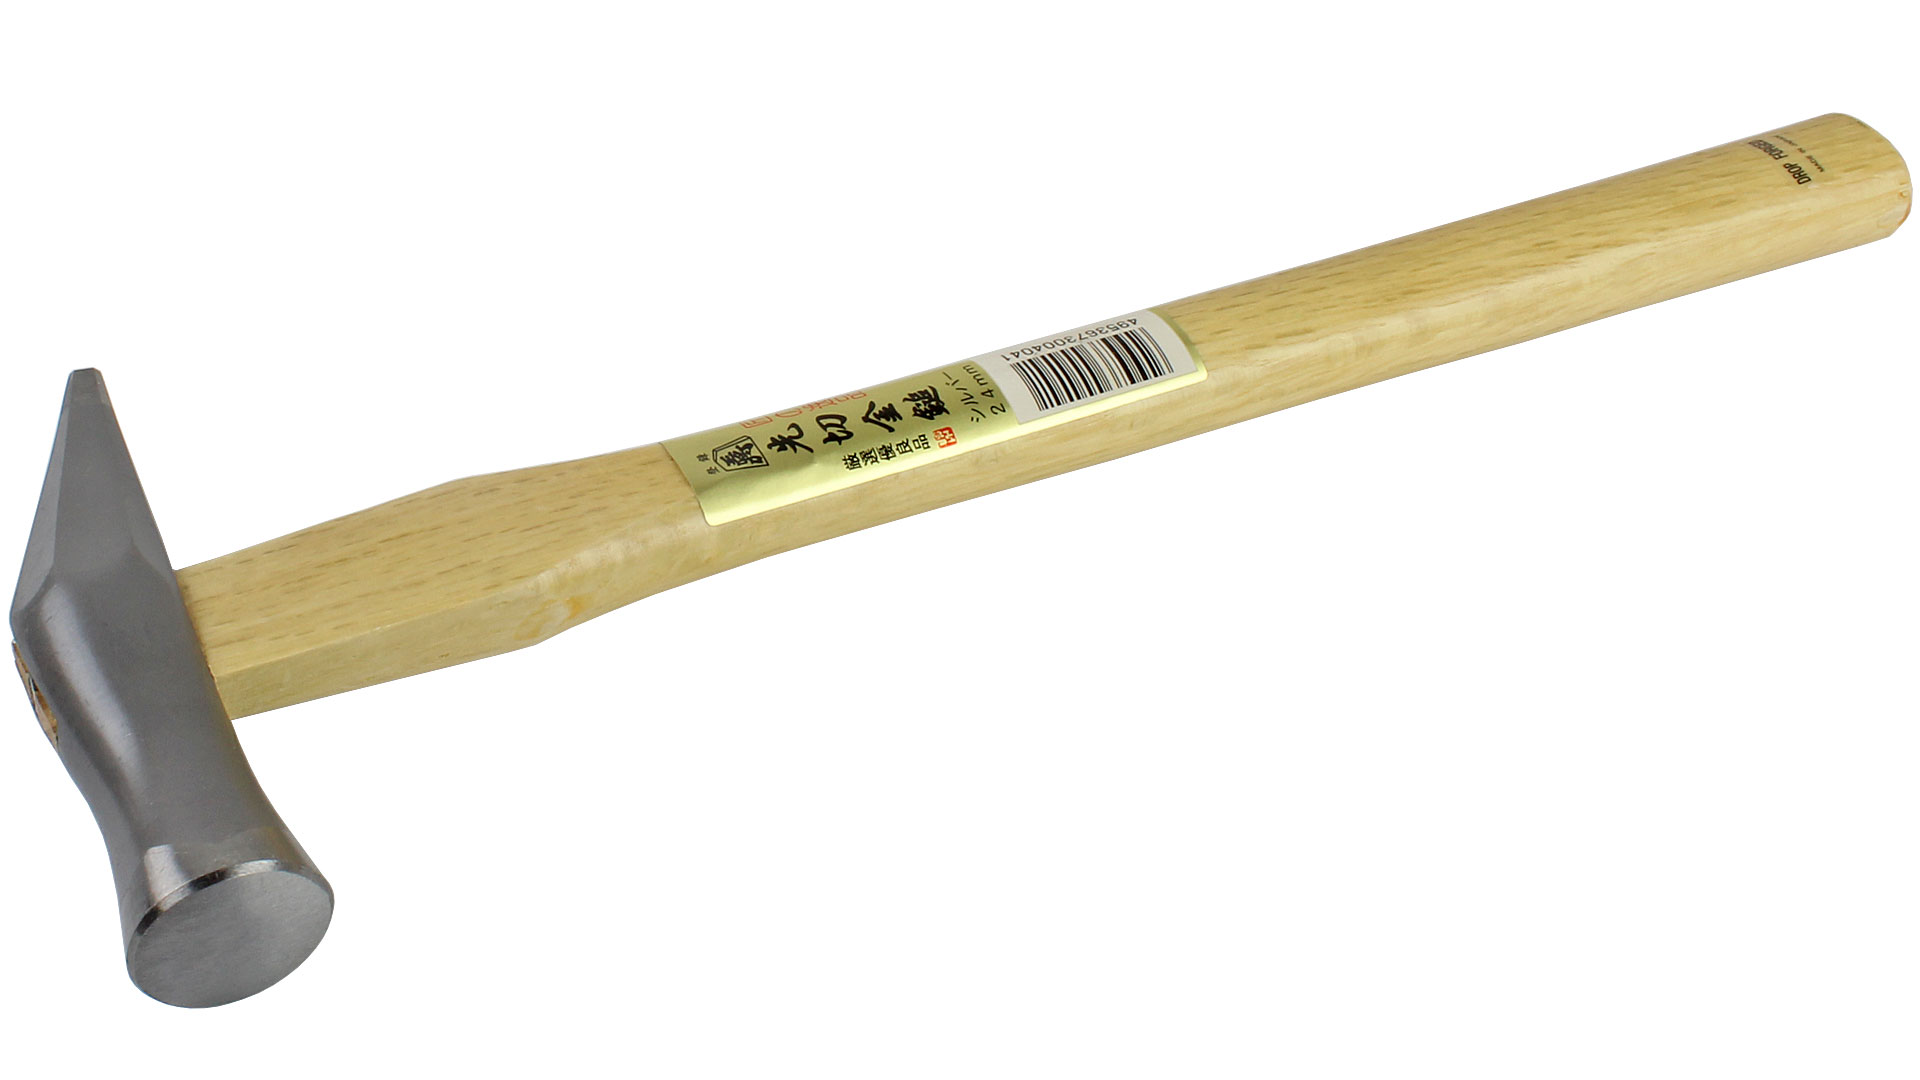 Genno - Japanese Hammers | FINE TOOLS